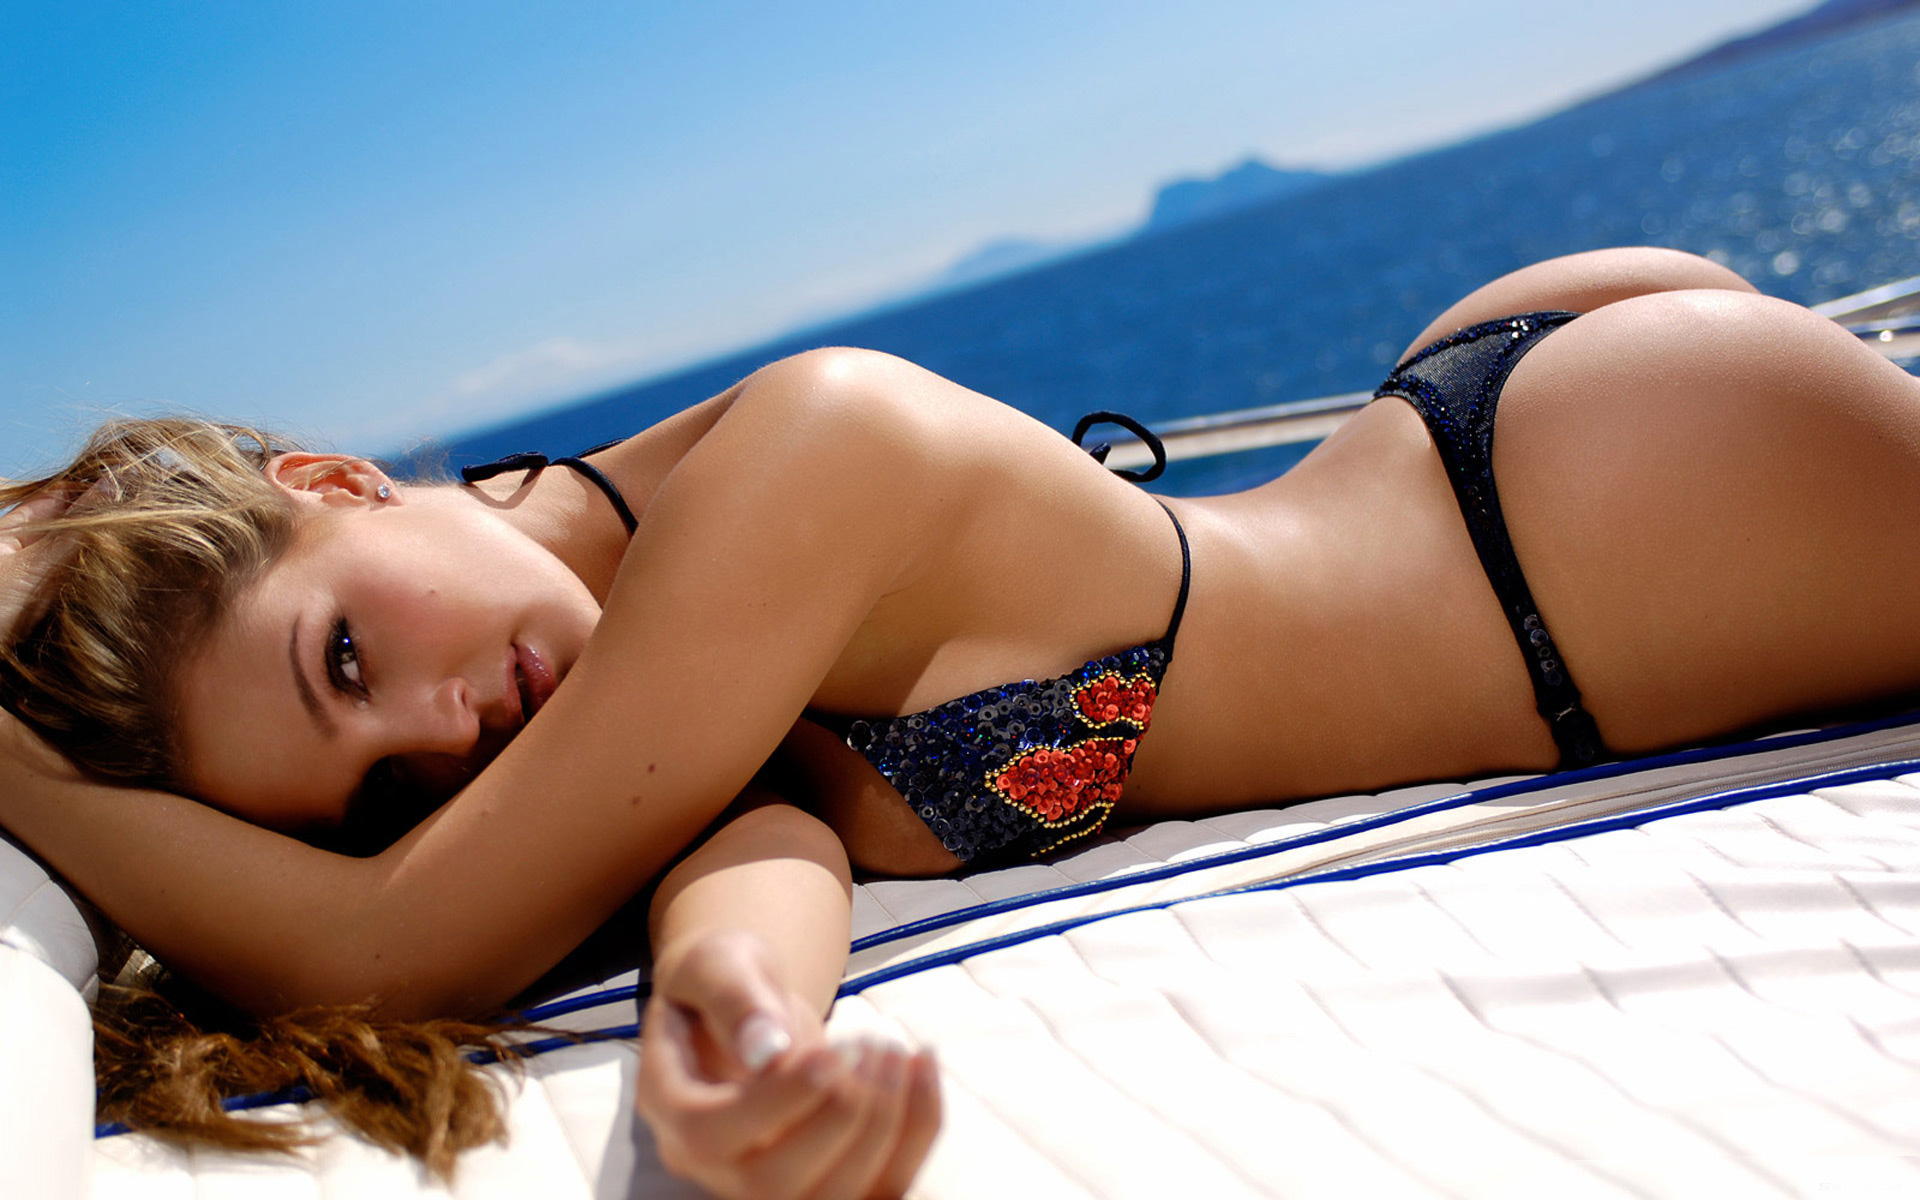 Only Babes Wallpaper Page 11 | Hot Bikin Wallpapers, Sexy